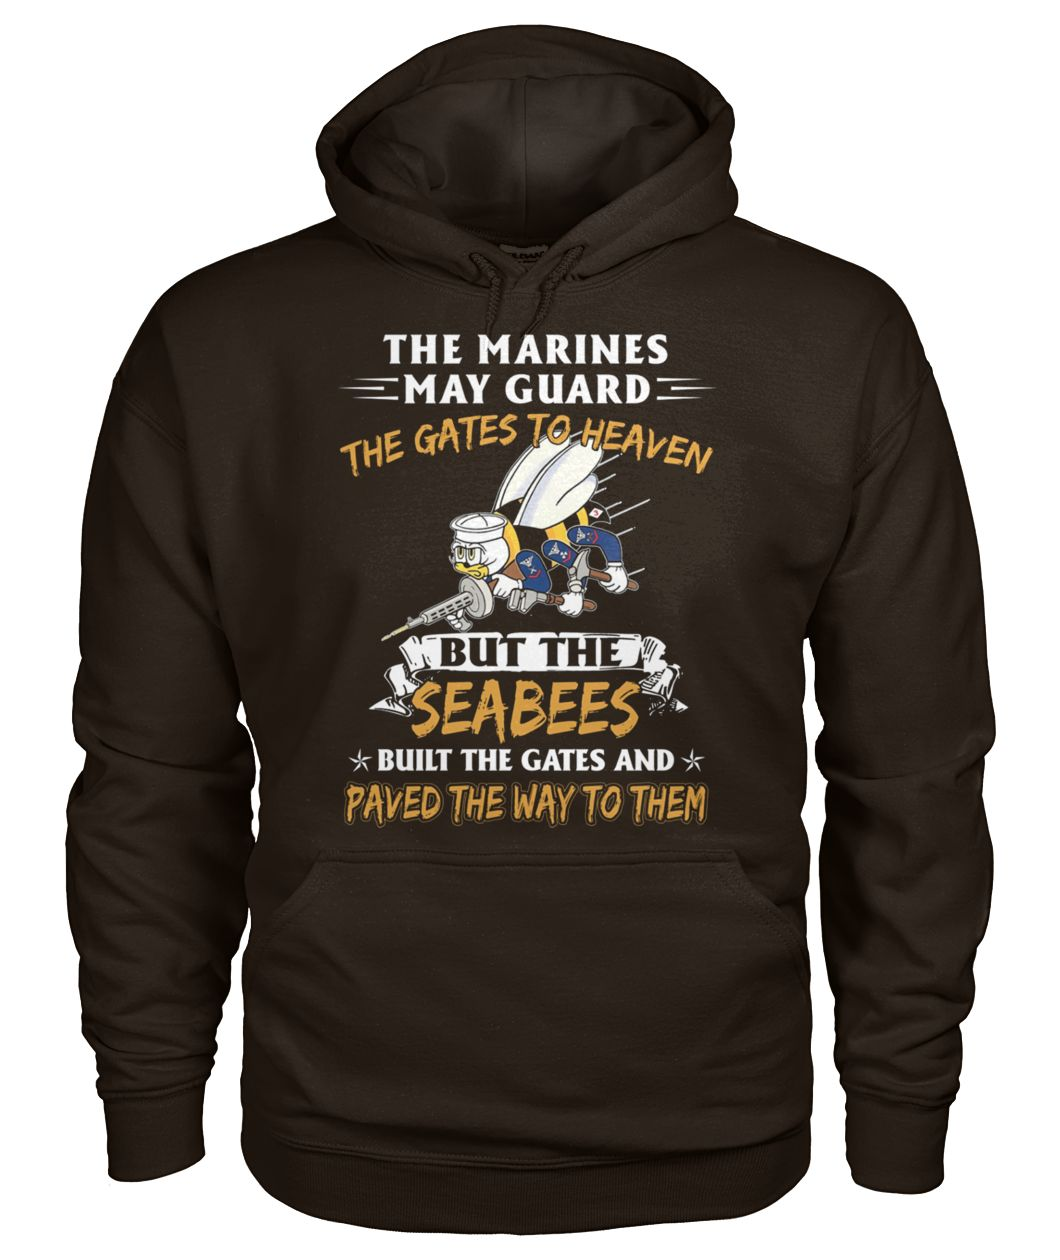 The marines may guard the gates to heaven but the seabees built the gates gildan hoodie